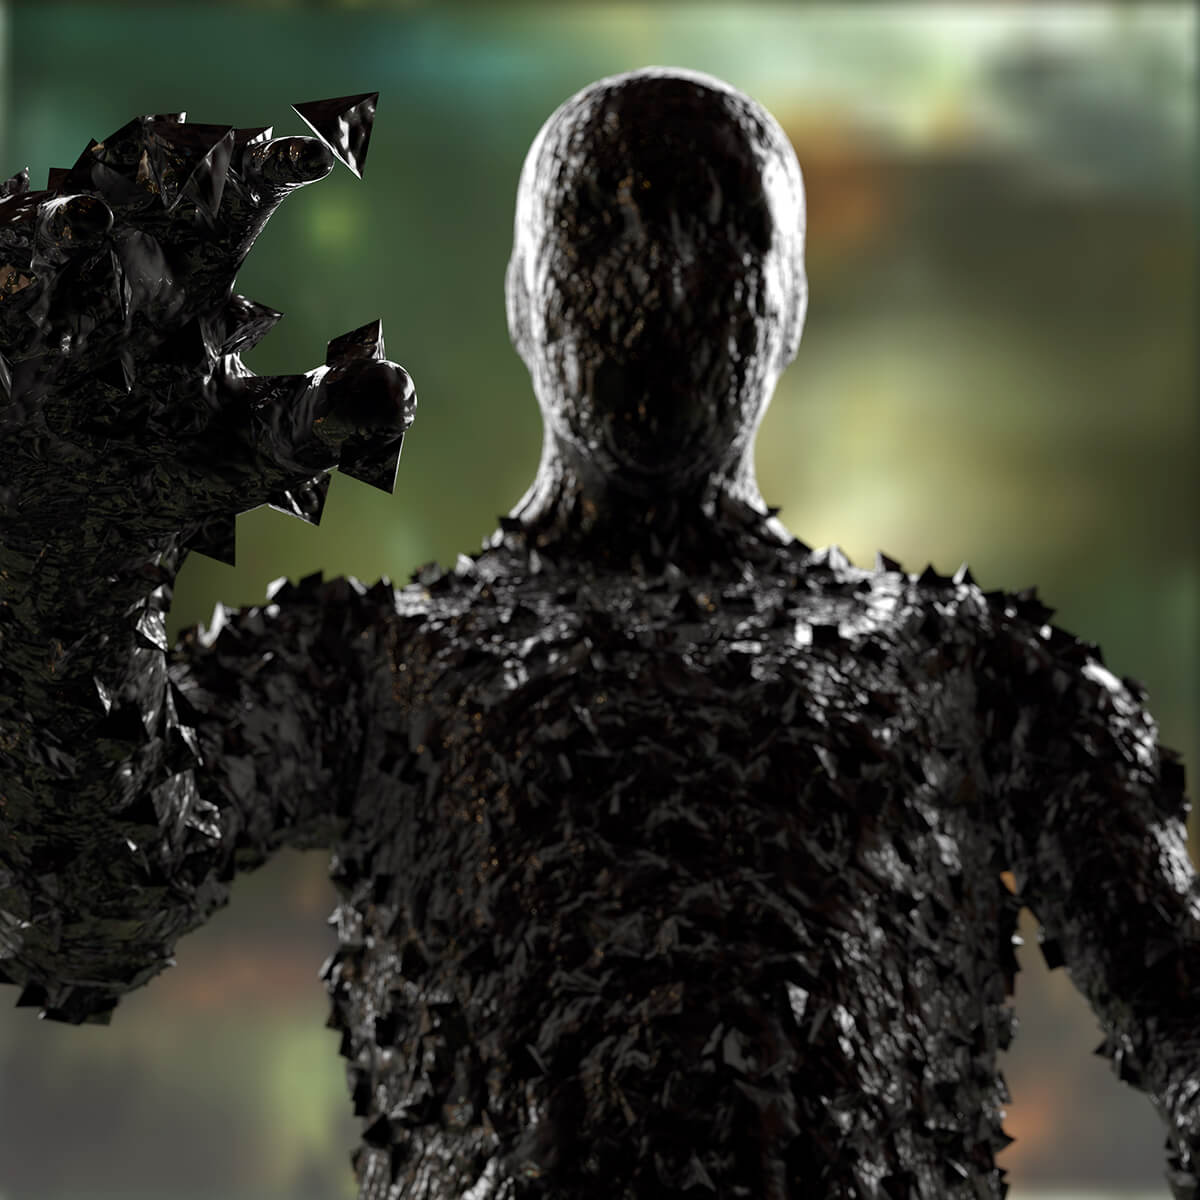 3D render of a mysterious figure made of black metal reaching out